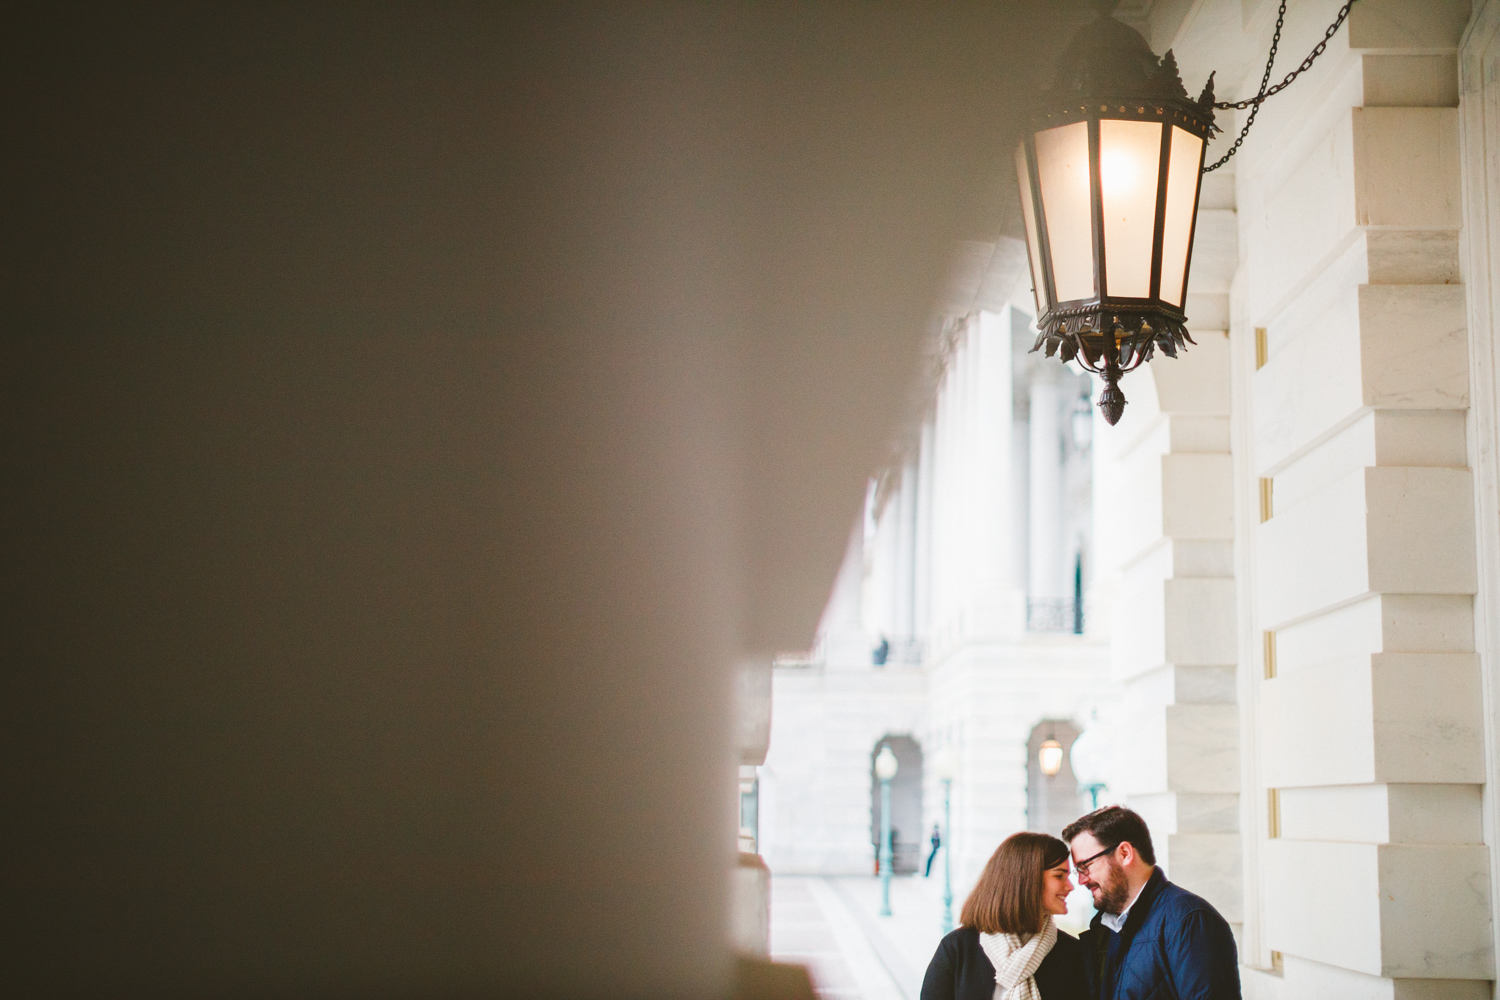 086 - engagement session at the dc capitol.jpg